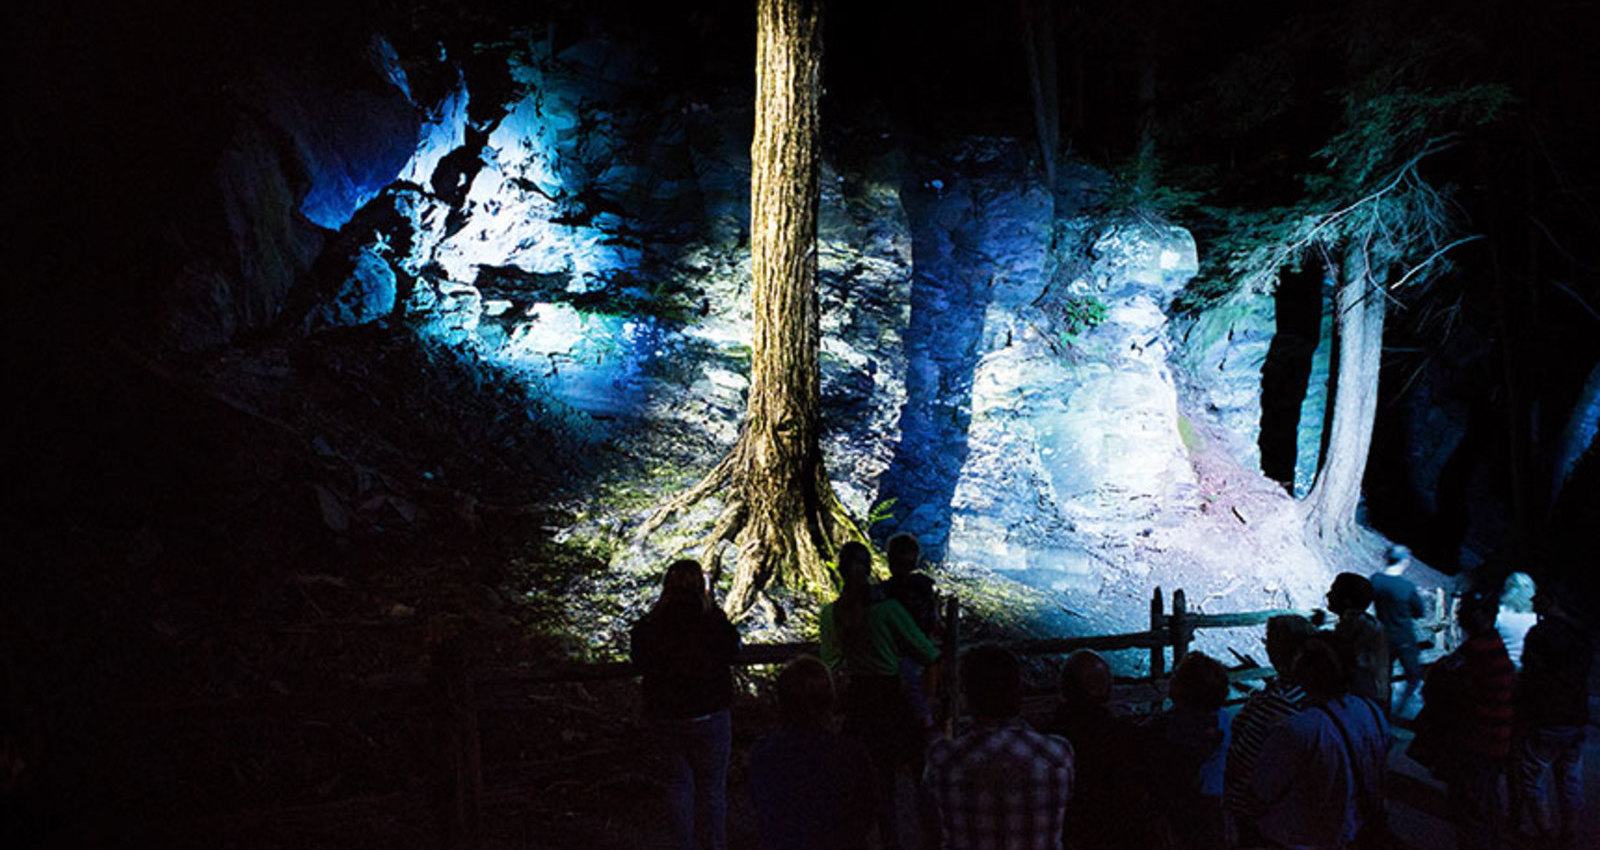 The enchanted woods of Foresta Lumina